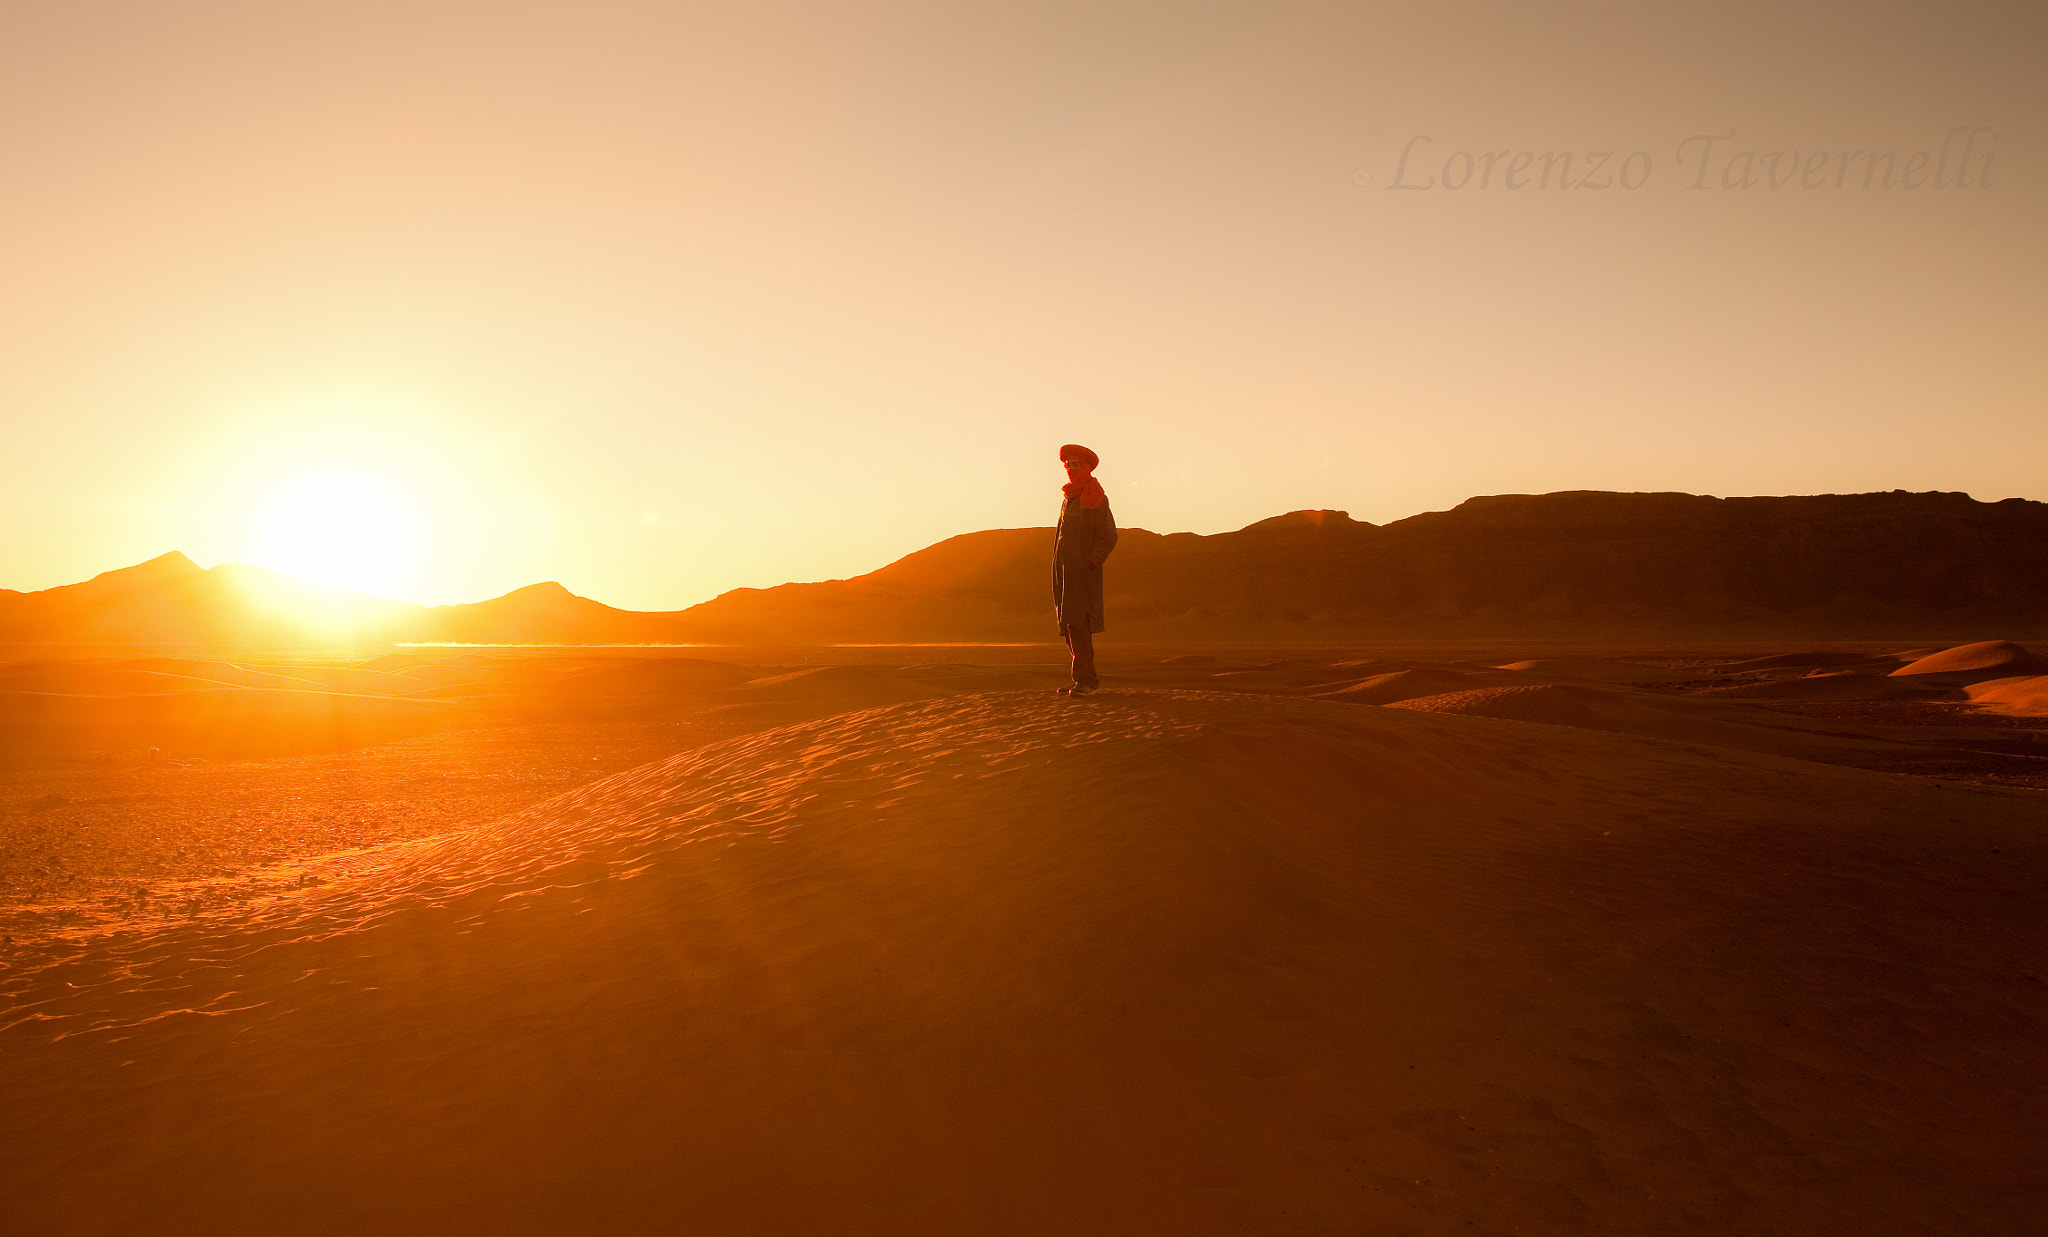 Photograph sunrise in the desert by Lorenzo Tavernelli on 500px